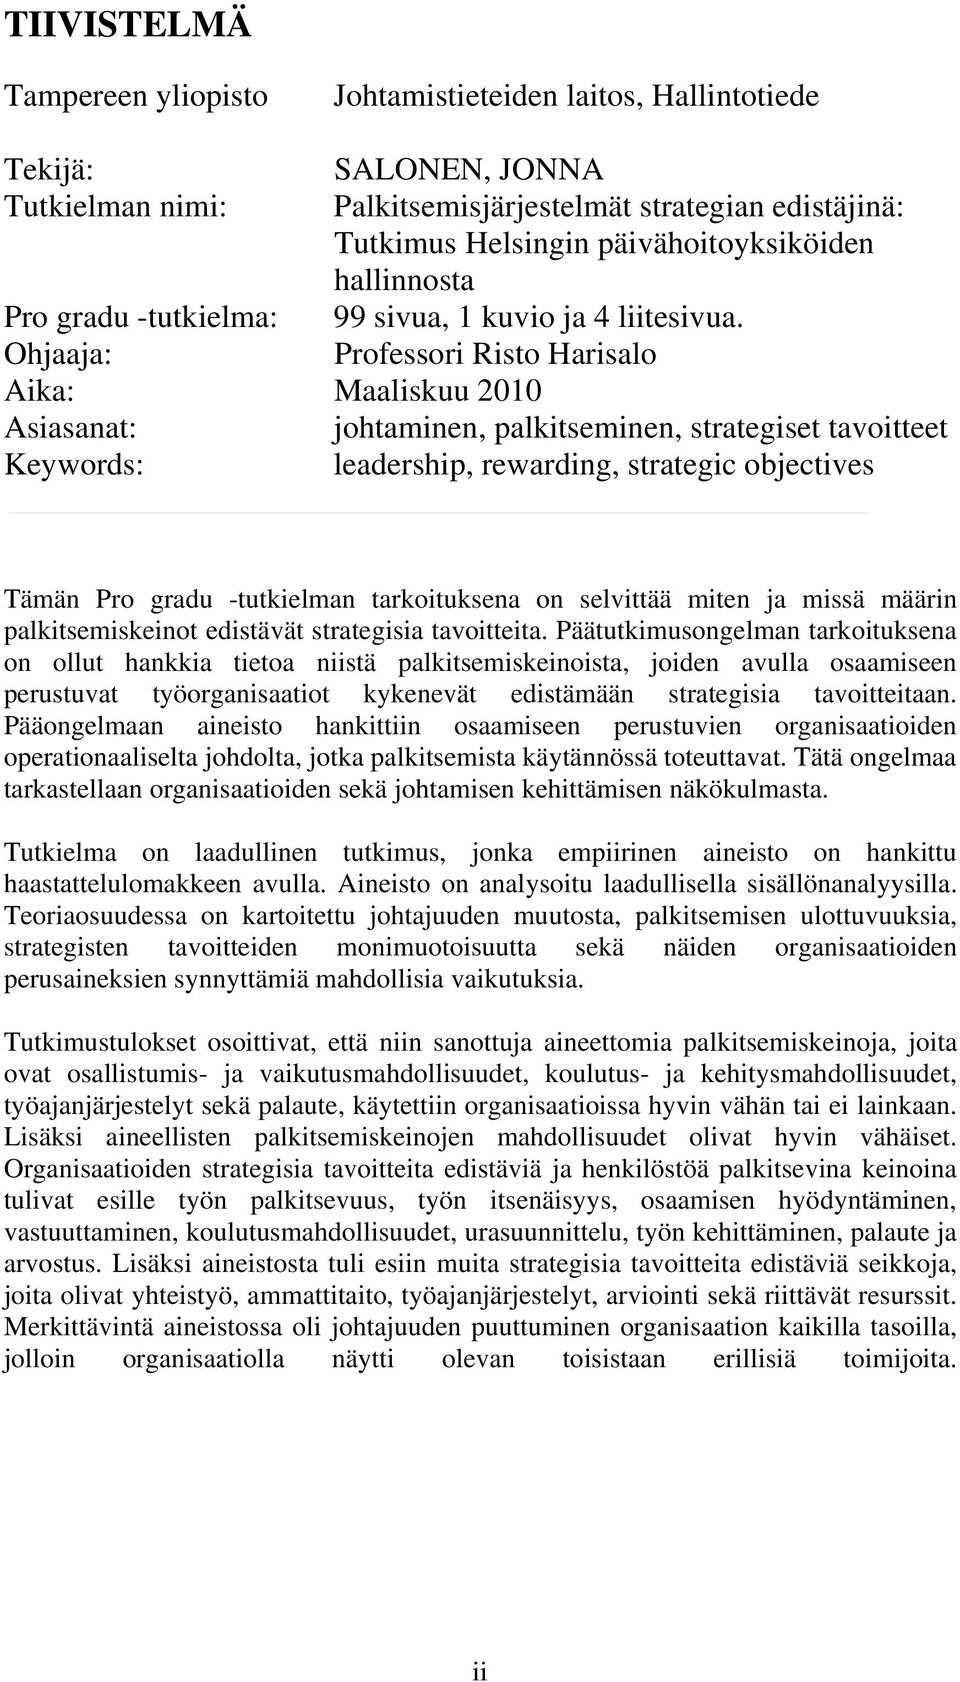 Ohjaaja: Professori Risto Harisalo Aika: Maaliskuu 2010 Asiasanat: johtaminen, palkitseminen, strategiset tavoitteet Keywords: leadership, rewarding, strategic objectives Tämän Pro gradu -tutkielman